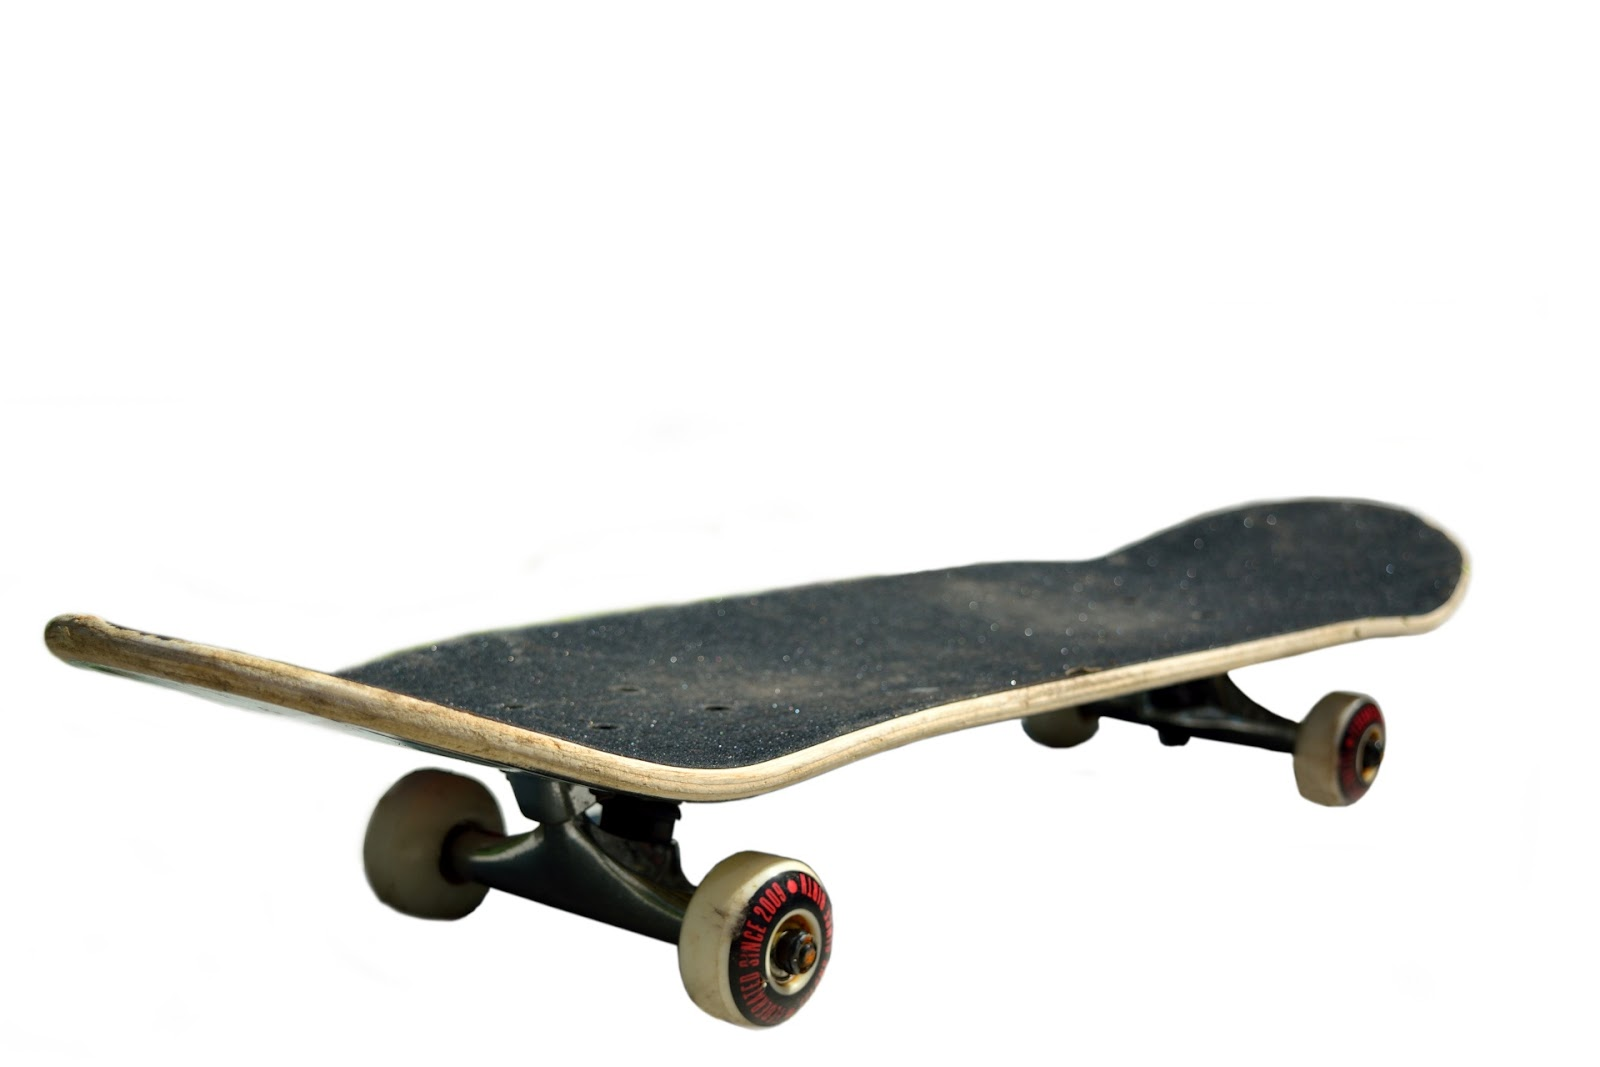 Skateboard Free Stock Photo - Public Domain Pictures